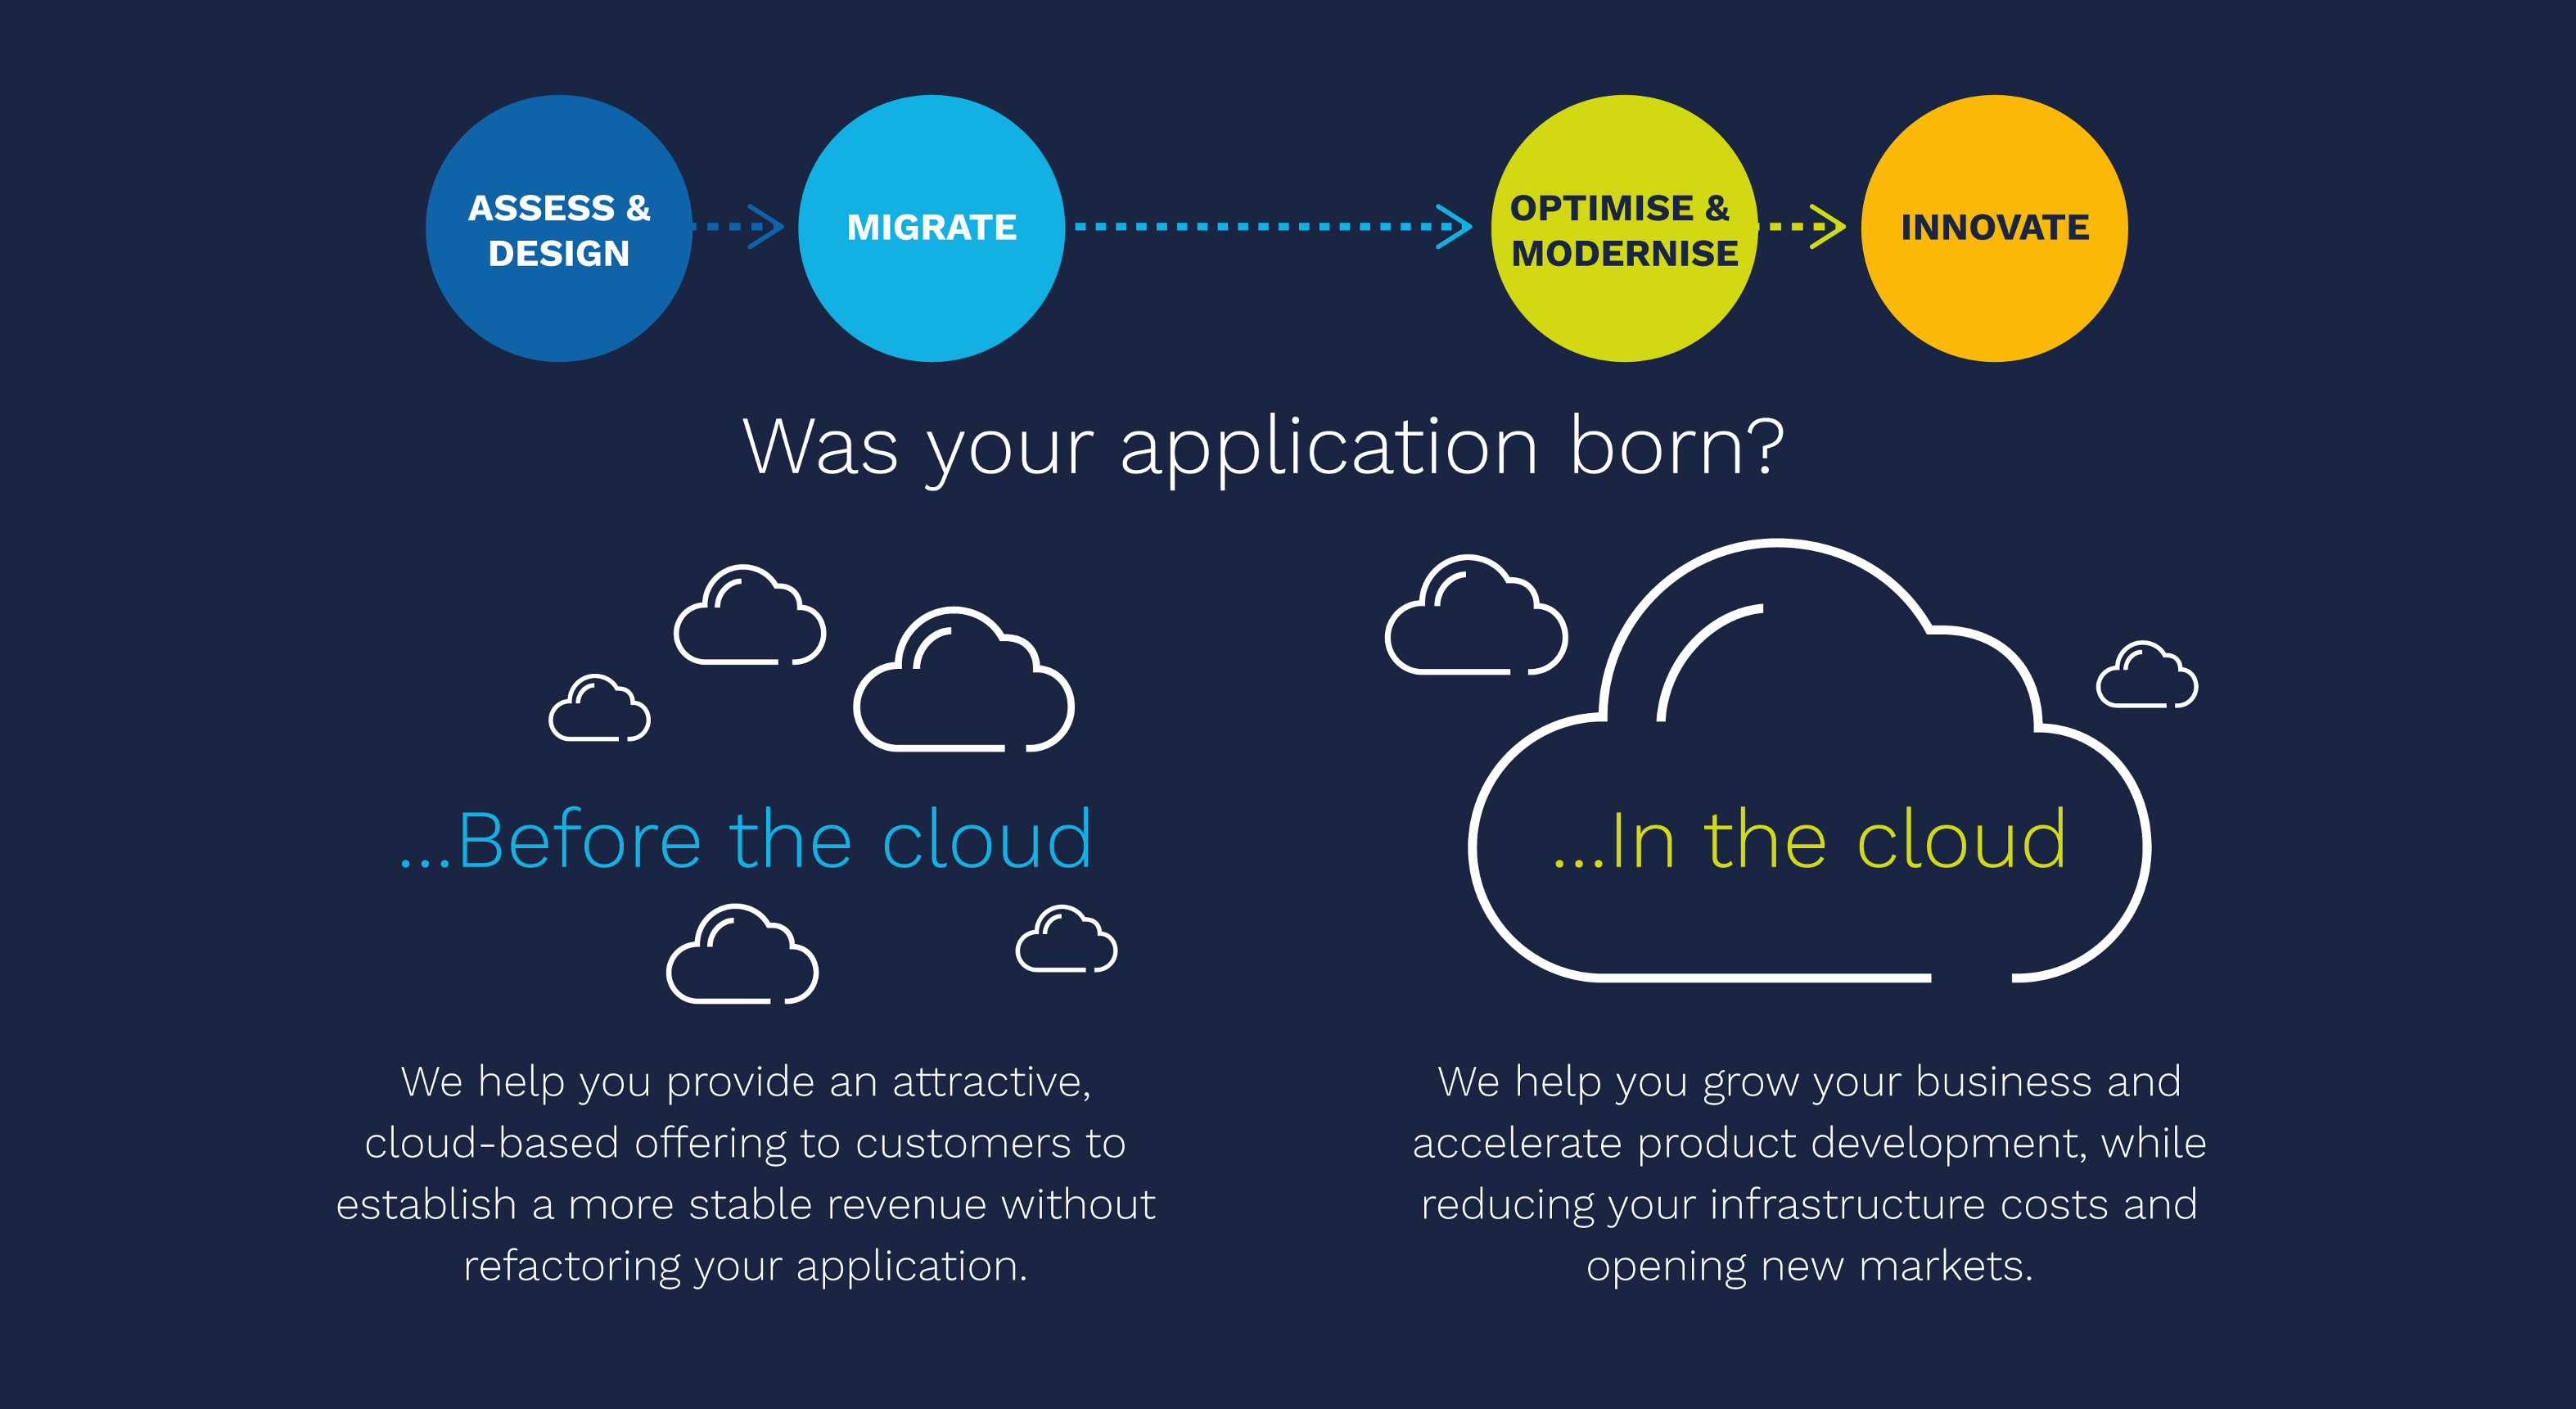 Born before the cloud or in the cloud?